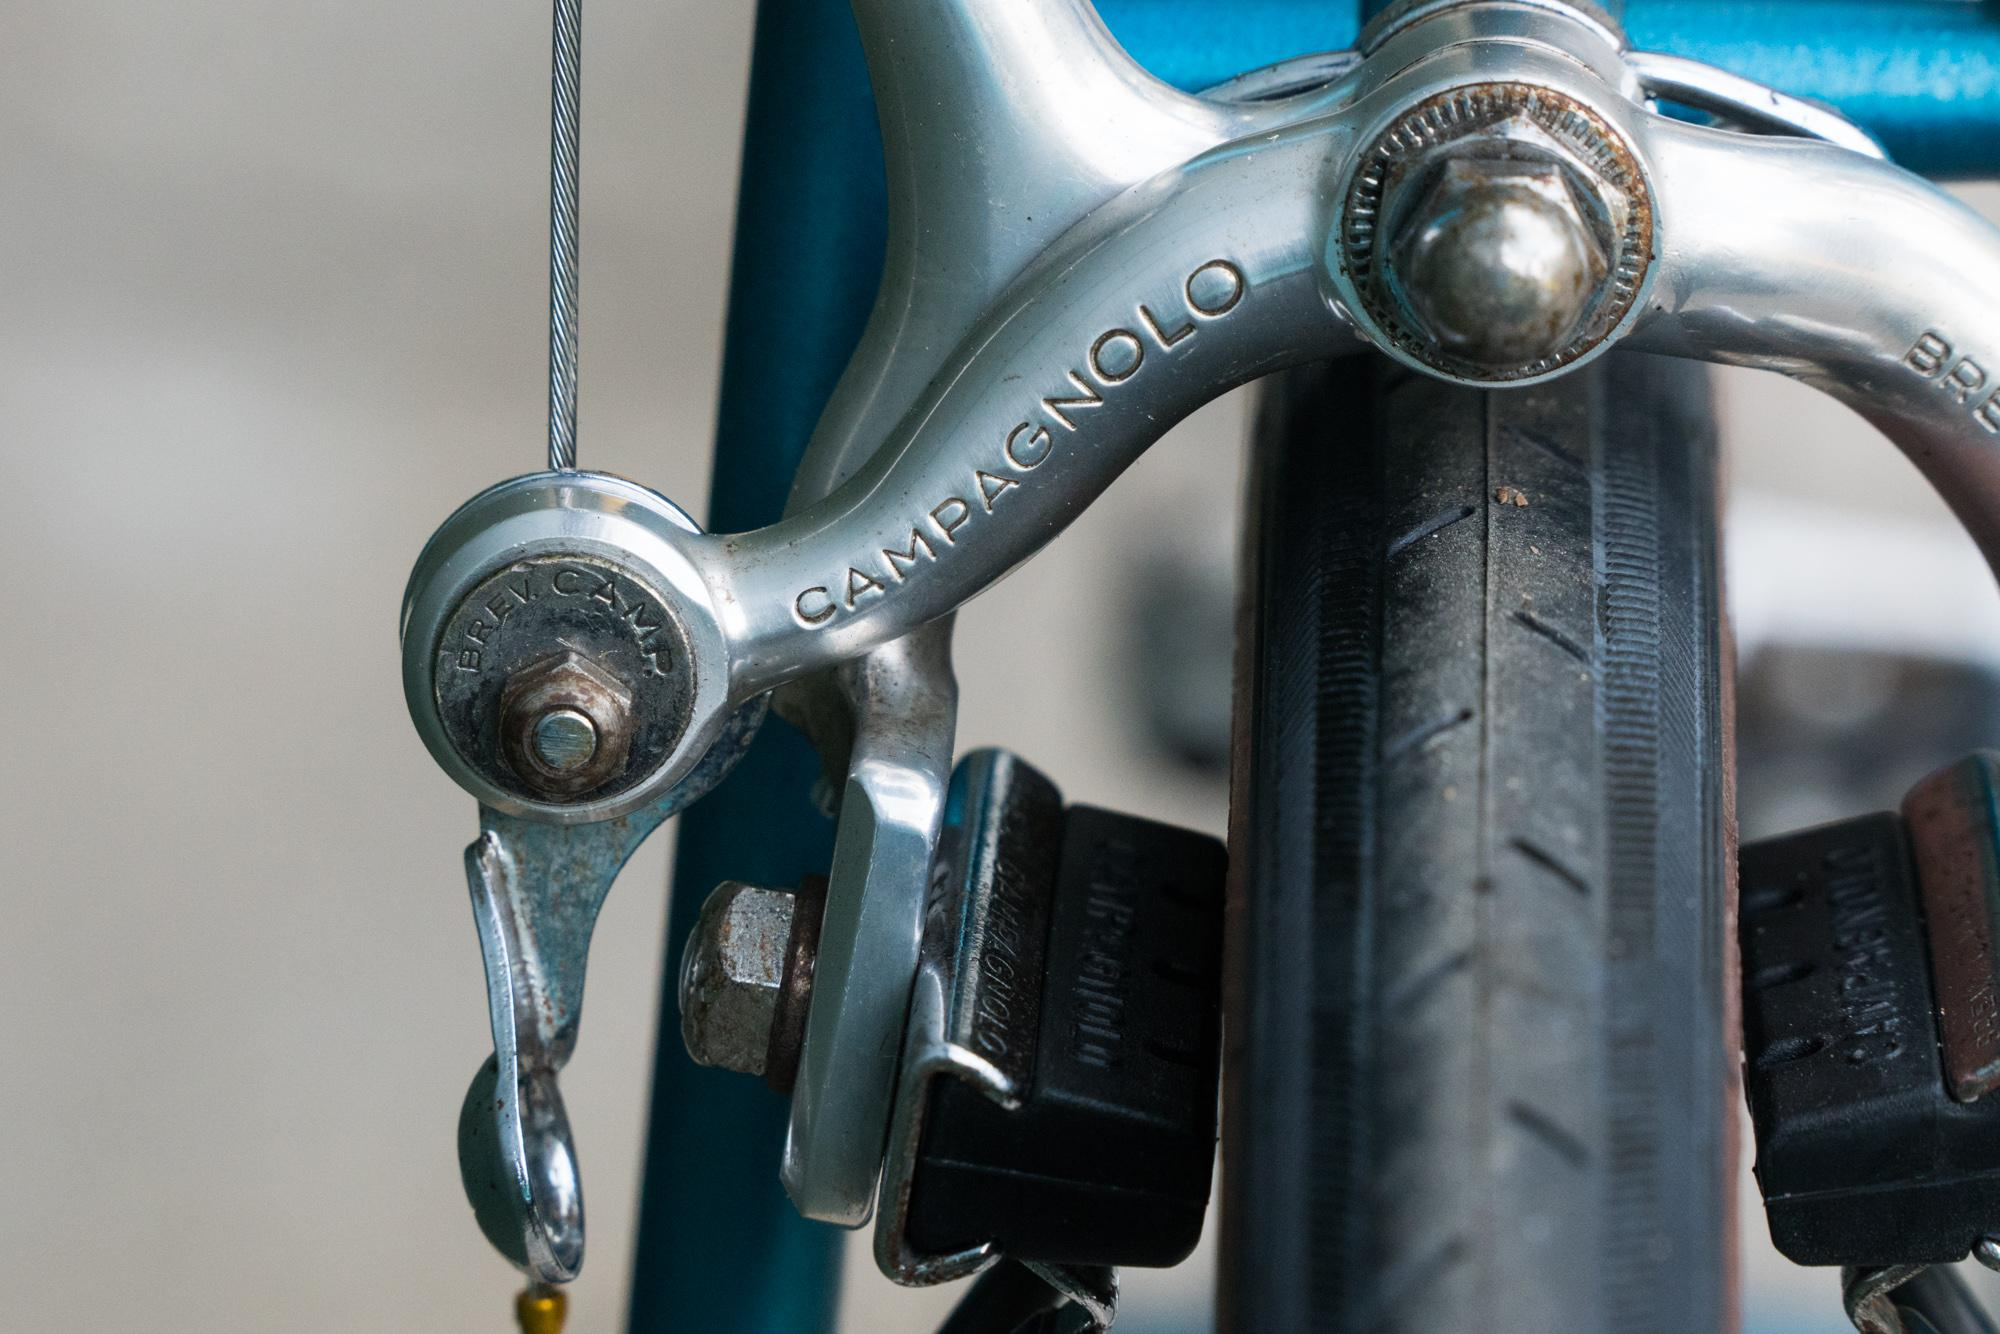 Johns Cool Colnago Coolnago (21 of 27)